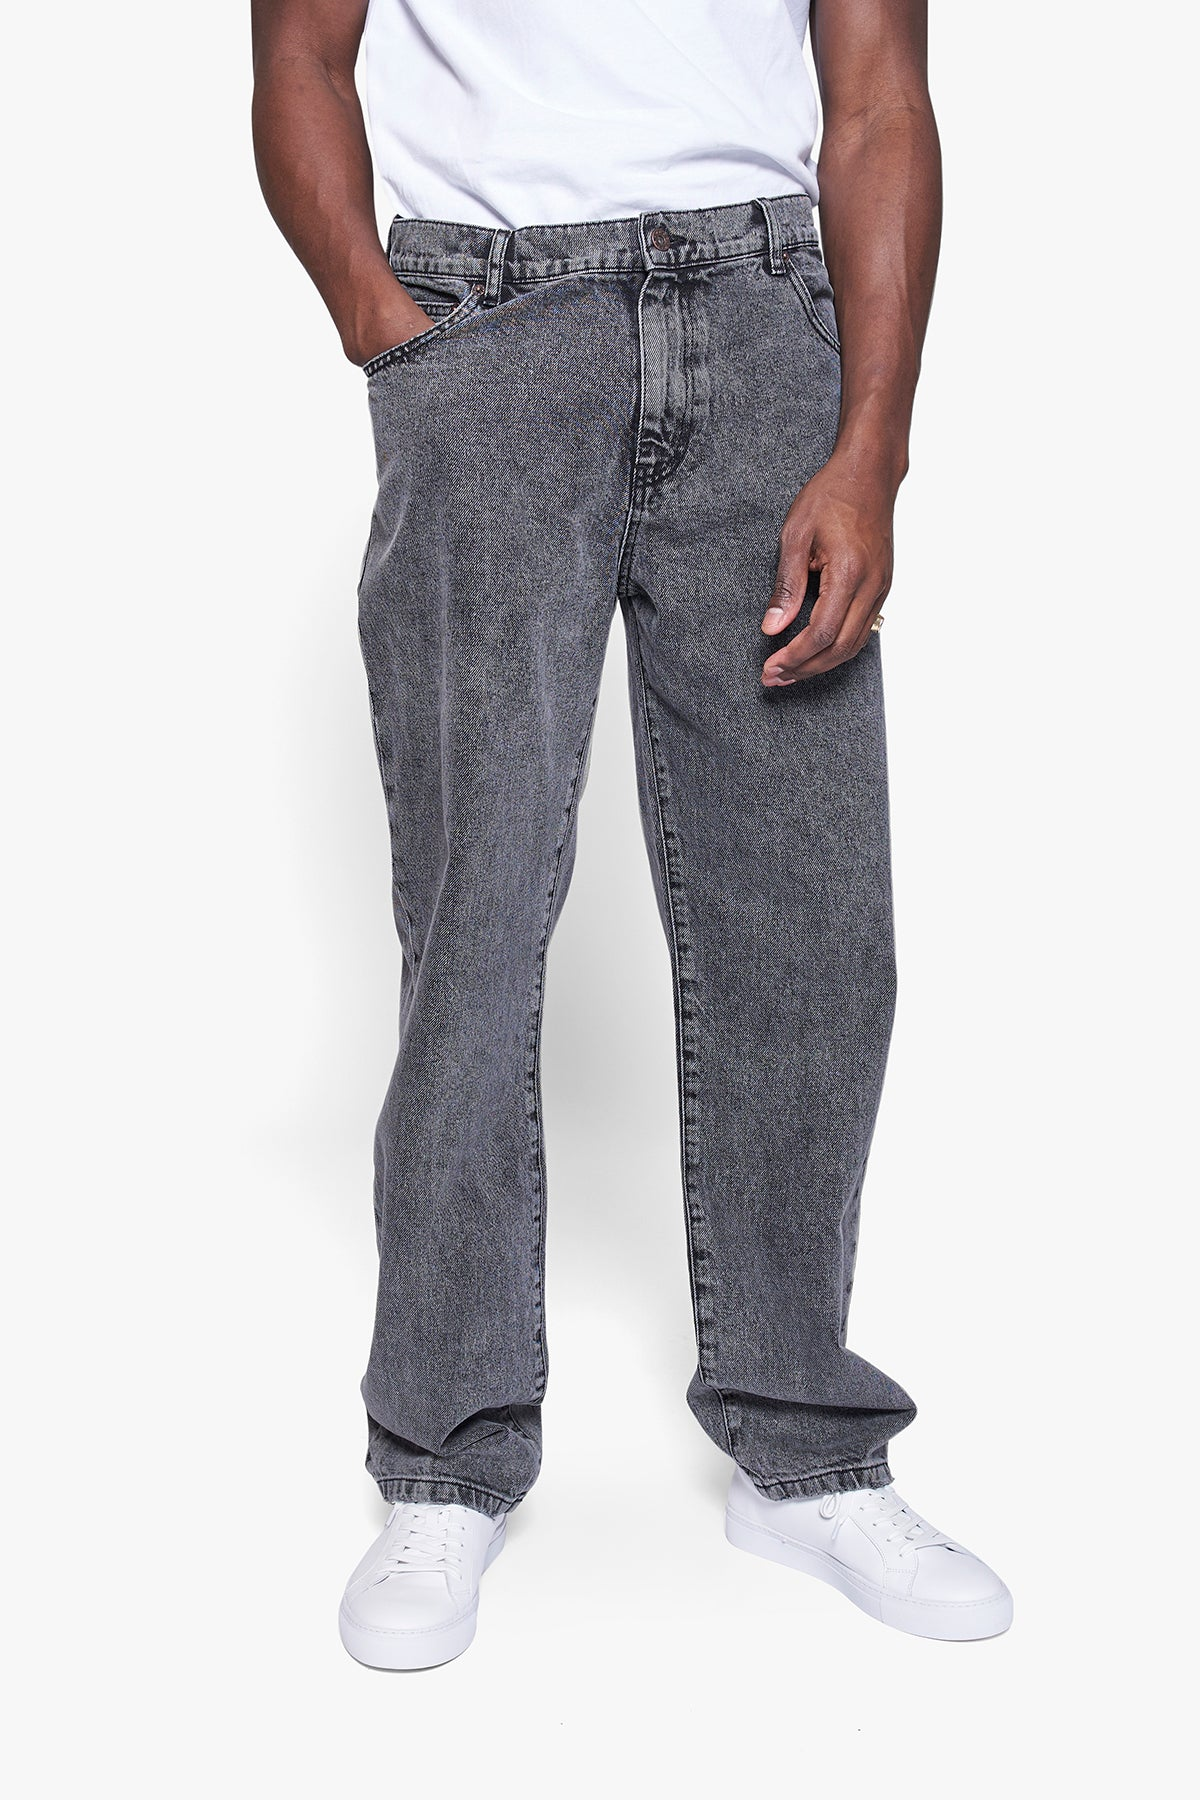 Leroy Thun Black Jeans - Dark Grey